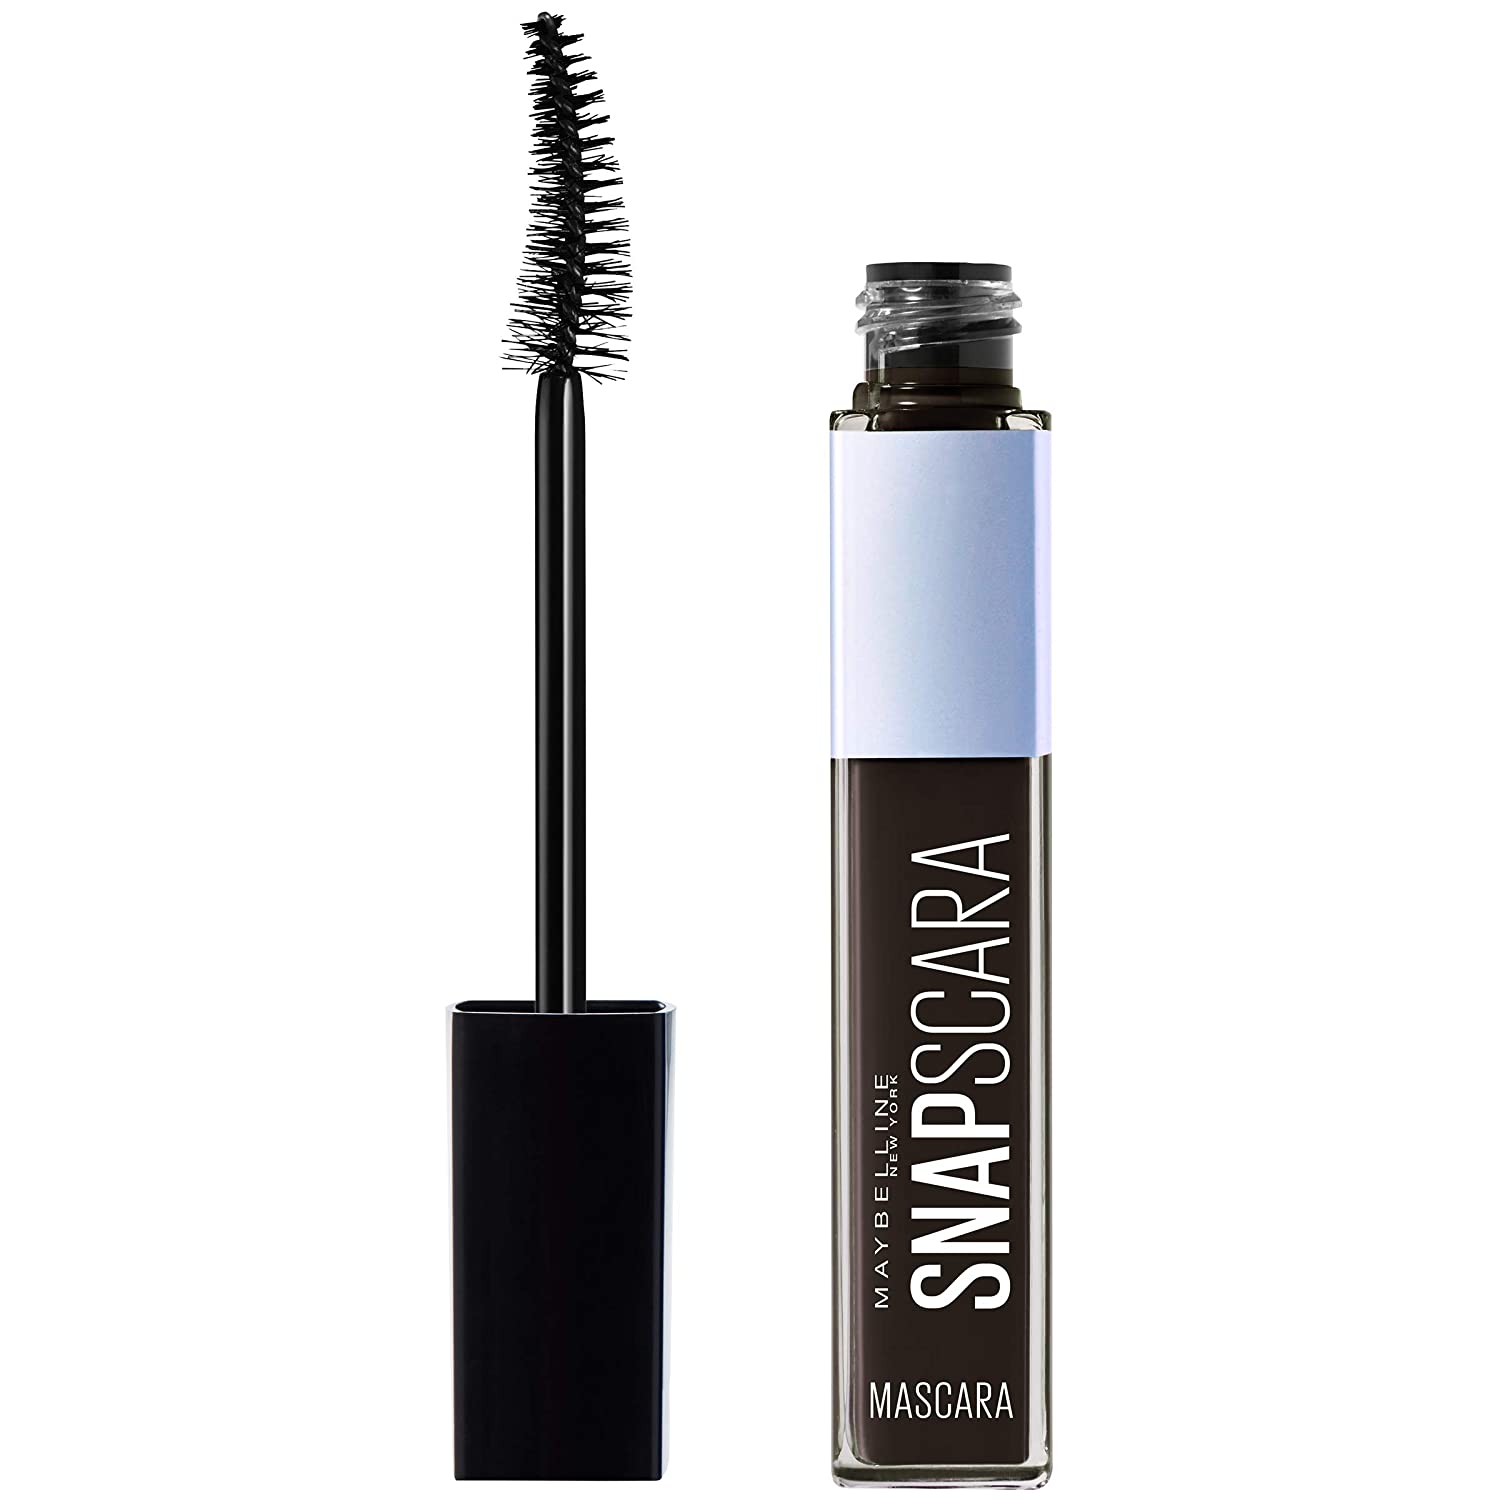 Maybelline New York Snapscara Washable Mascara Makeup, Bold Brown, 0.34 Fluid Ounce, Pack of 1